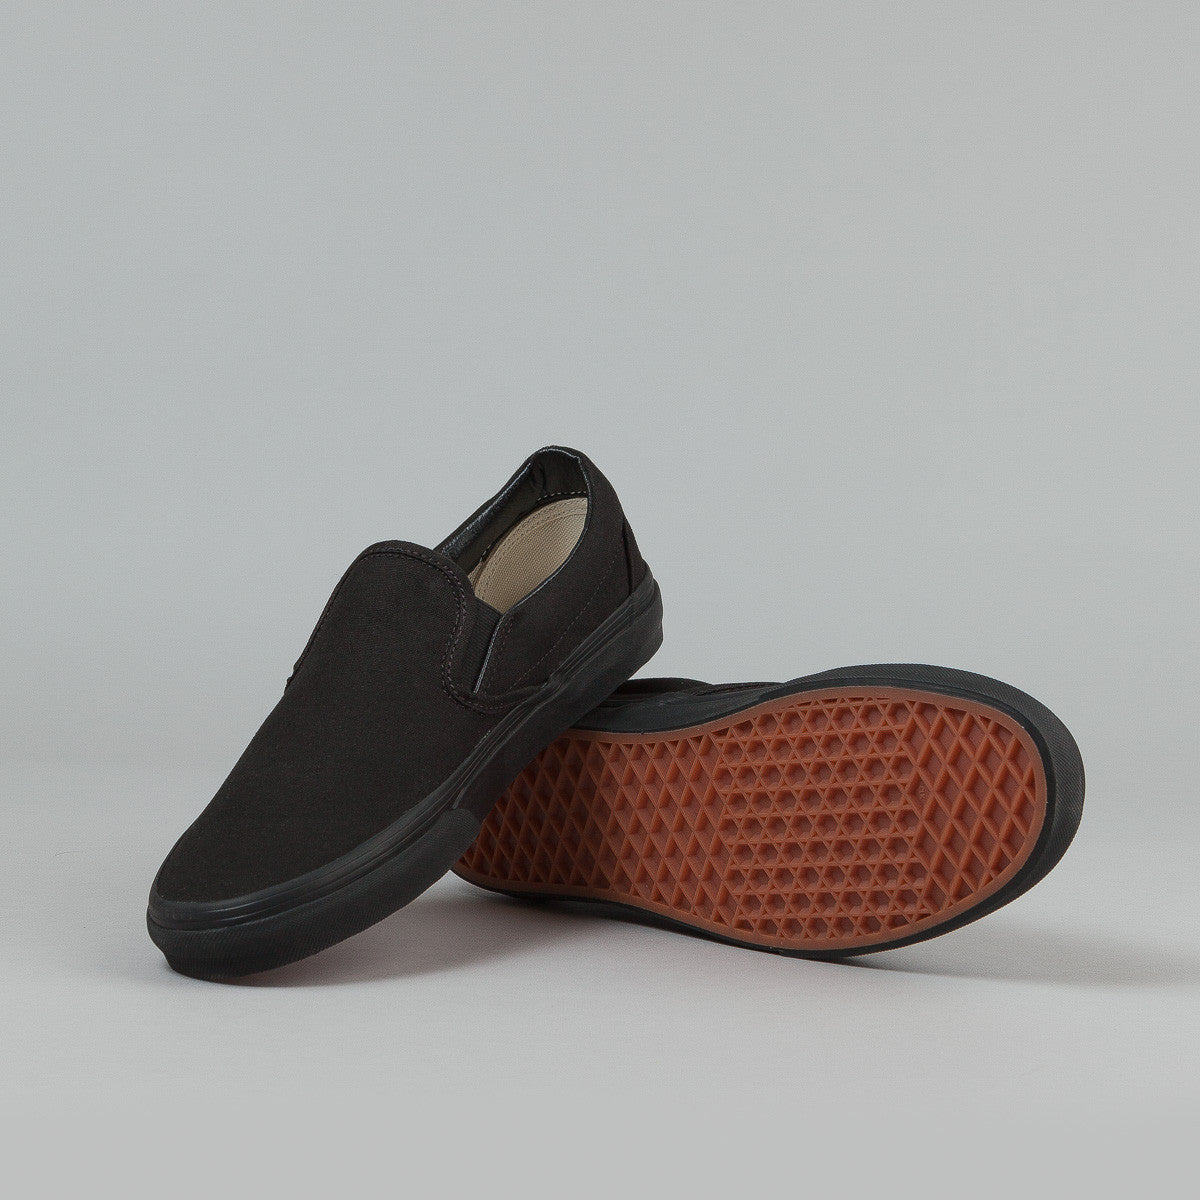 Vans Classic Slip-on Shoes - Black / Black